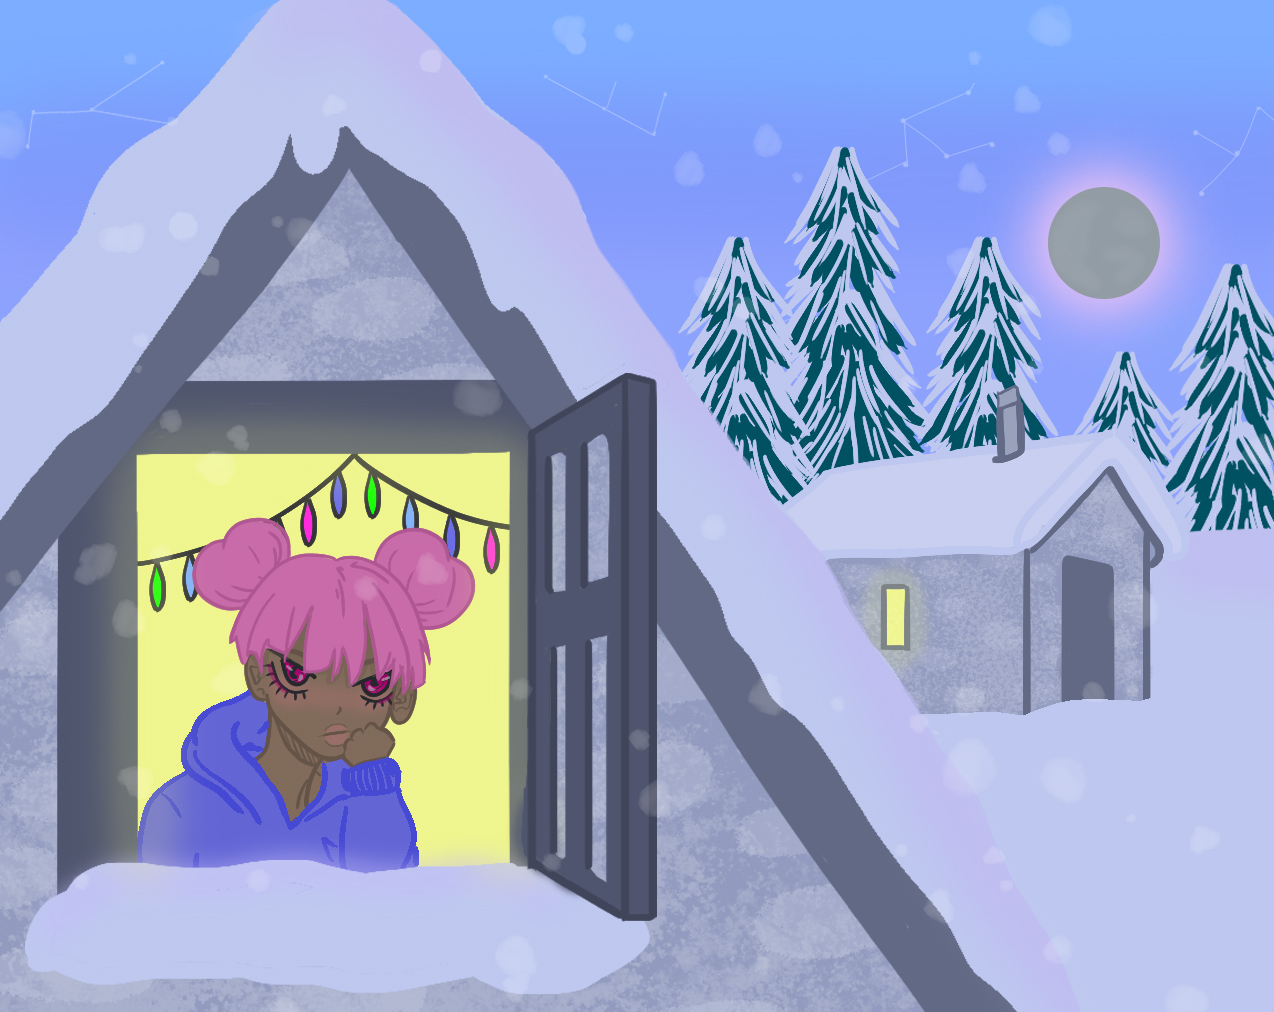 Illustration of a character sitting inside a snowy cabin, looking out the window.